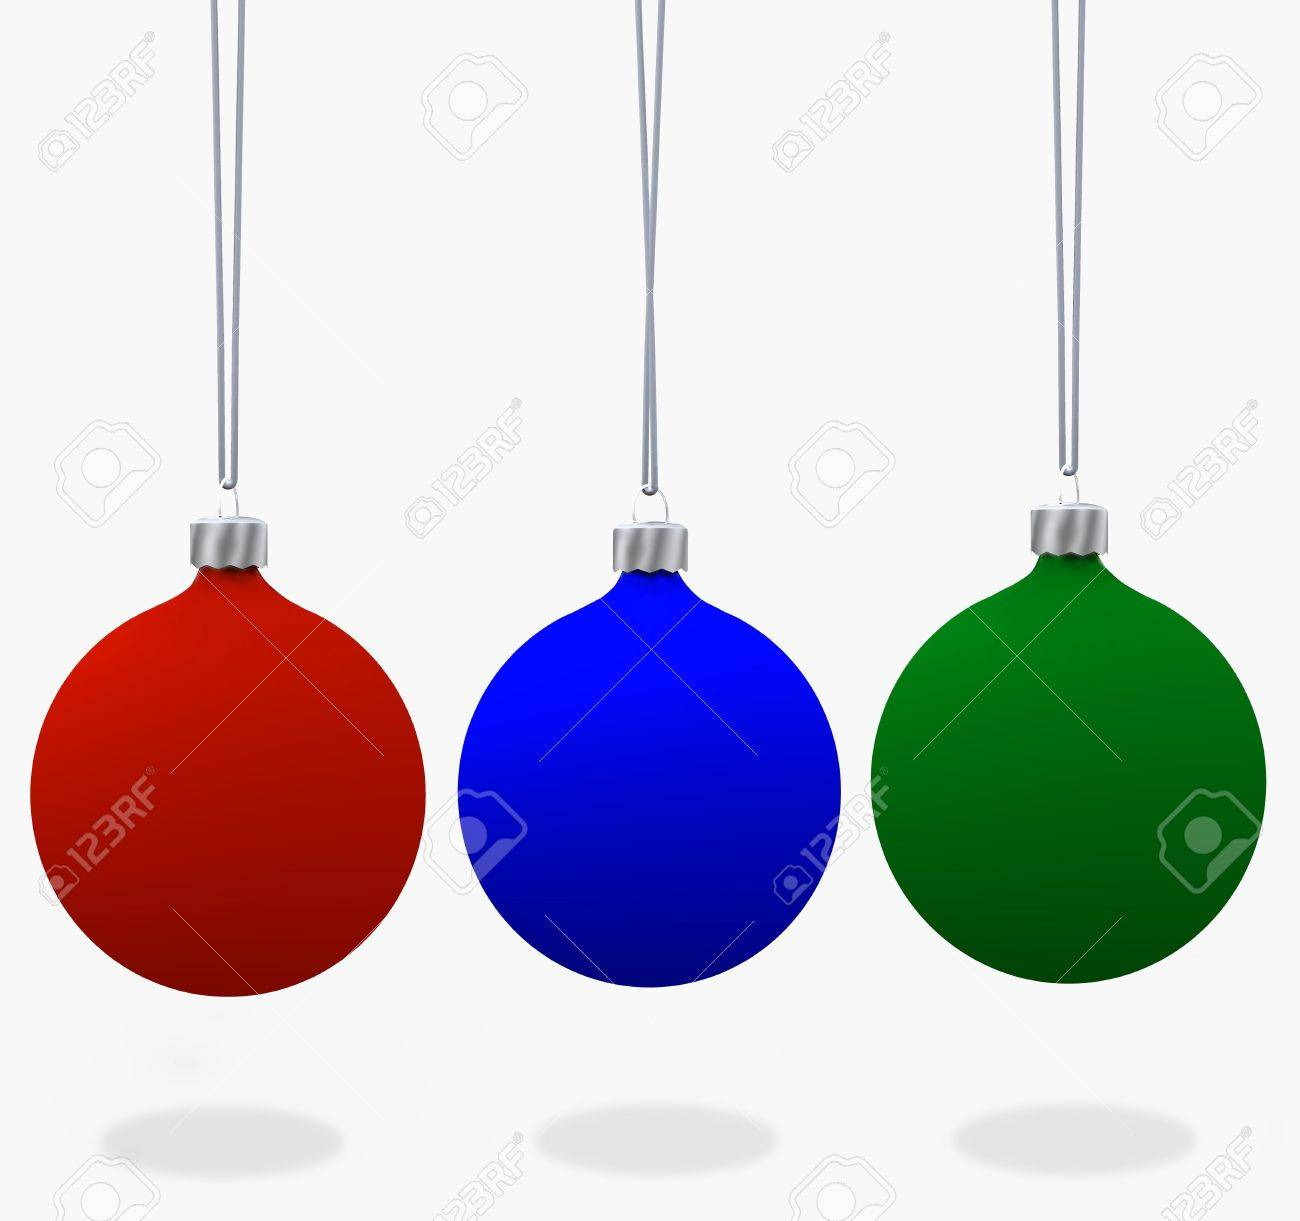 Blue green christmas tree decorations - Assorment Of Christmas Ornaments In Velvet Flat Matte Red Blue Green